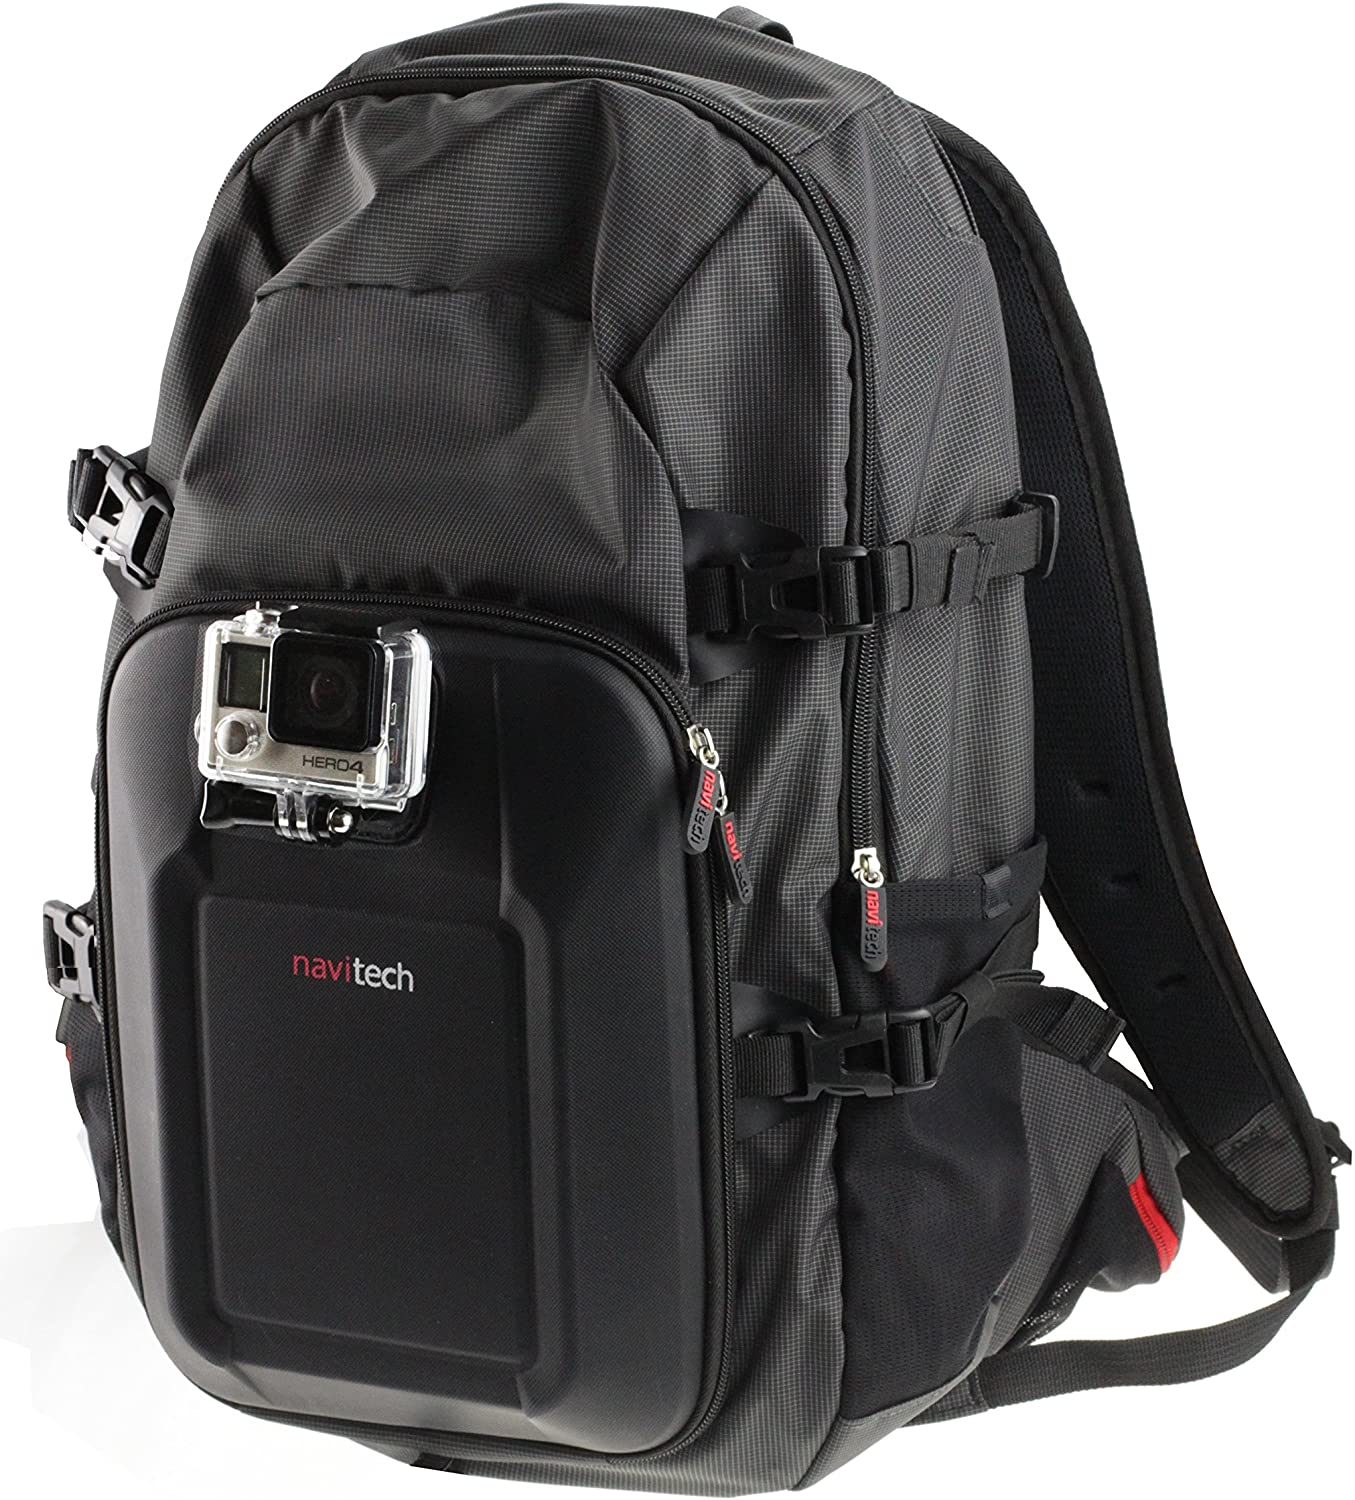 Navitech Action Camera Backpack With Integrated Chest Strap Compatible With The PNJ Cam AEE S50 PRO, AEE S70 PRO, Cam ST4K